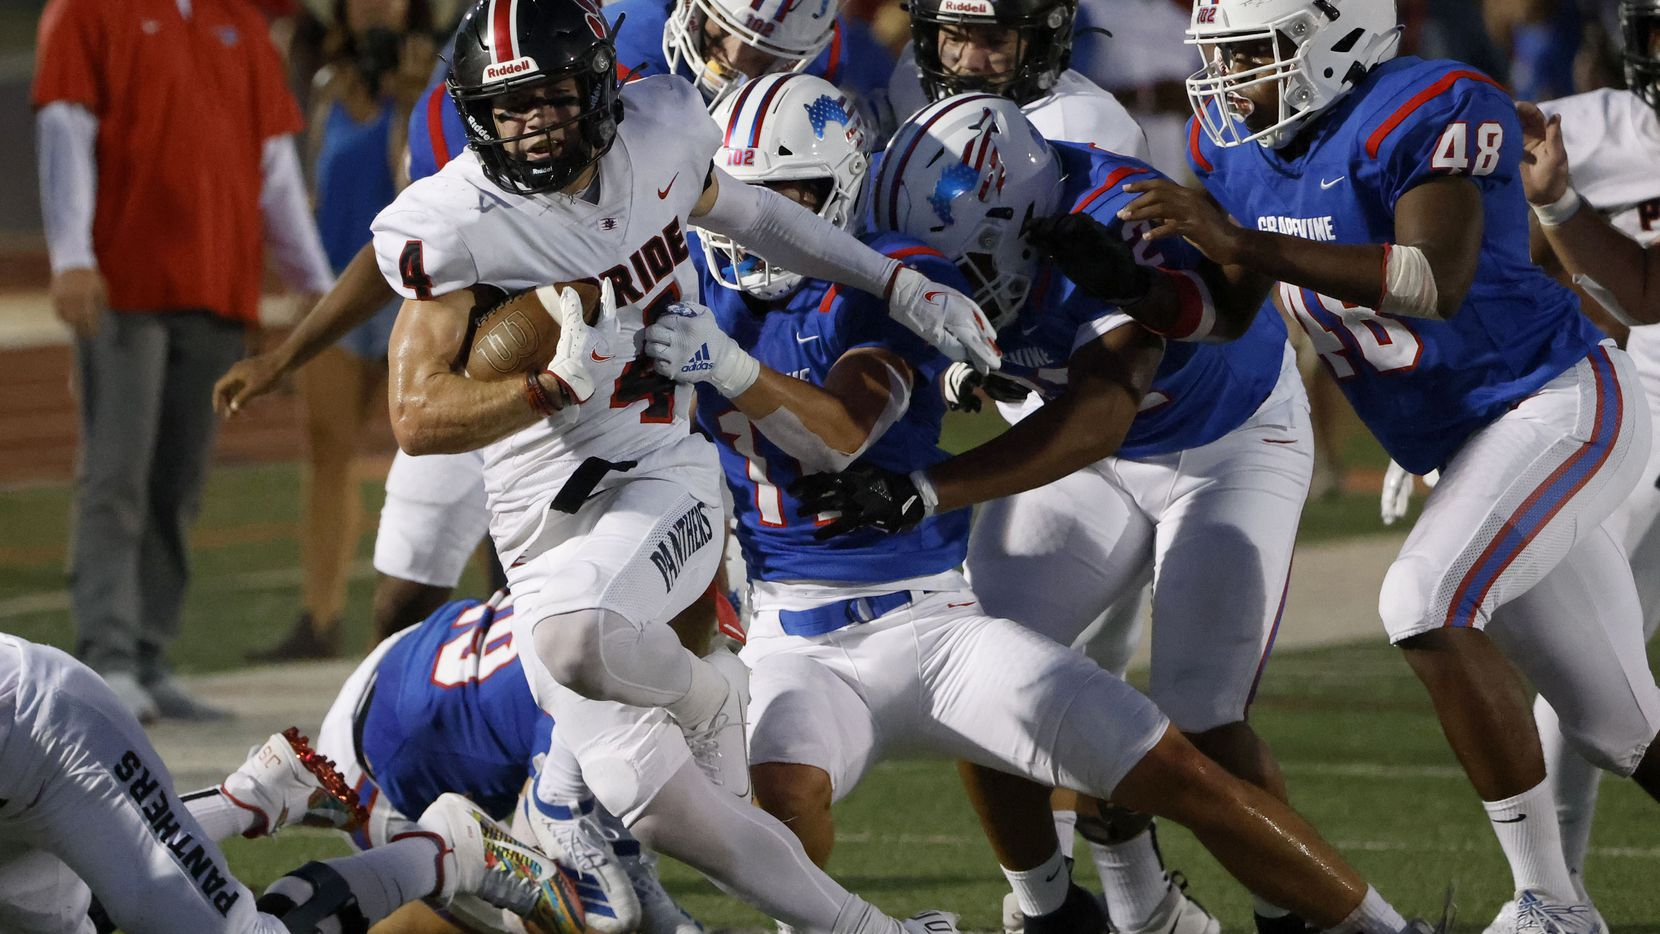 Grapevine defenders, including Brannan Mannix (11) try to tackle Colleyville Heritage receiver Hogan Wasson (4) during the first half of their high school football game in Grapevine, Texas on Aug. 27, 2021. (Michael Ainsworth/Special Contributor)